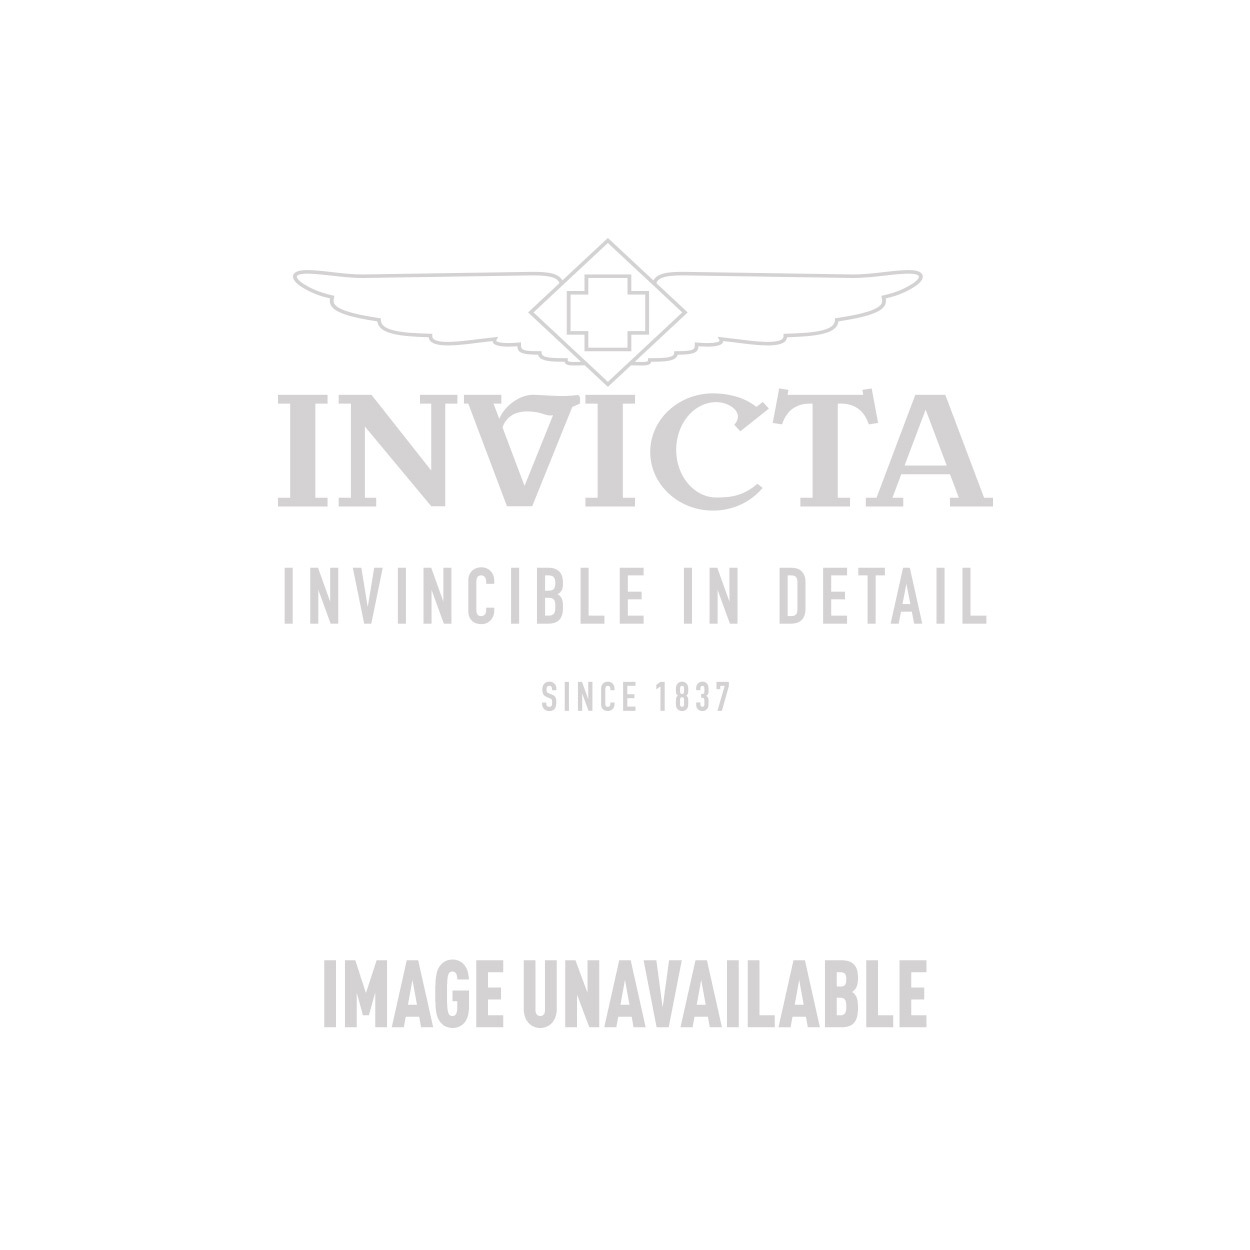 Invicta Aviator Swiss Movement Quartz Watch - Stainless Steel case Stainless Steel band - Model 1742